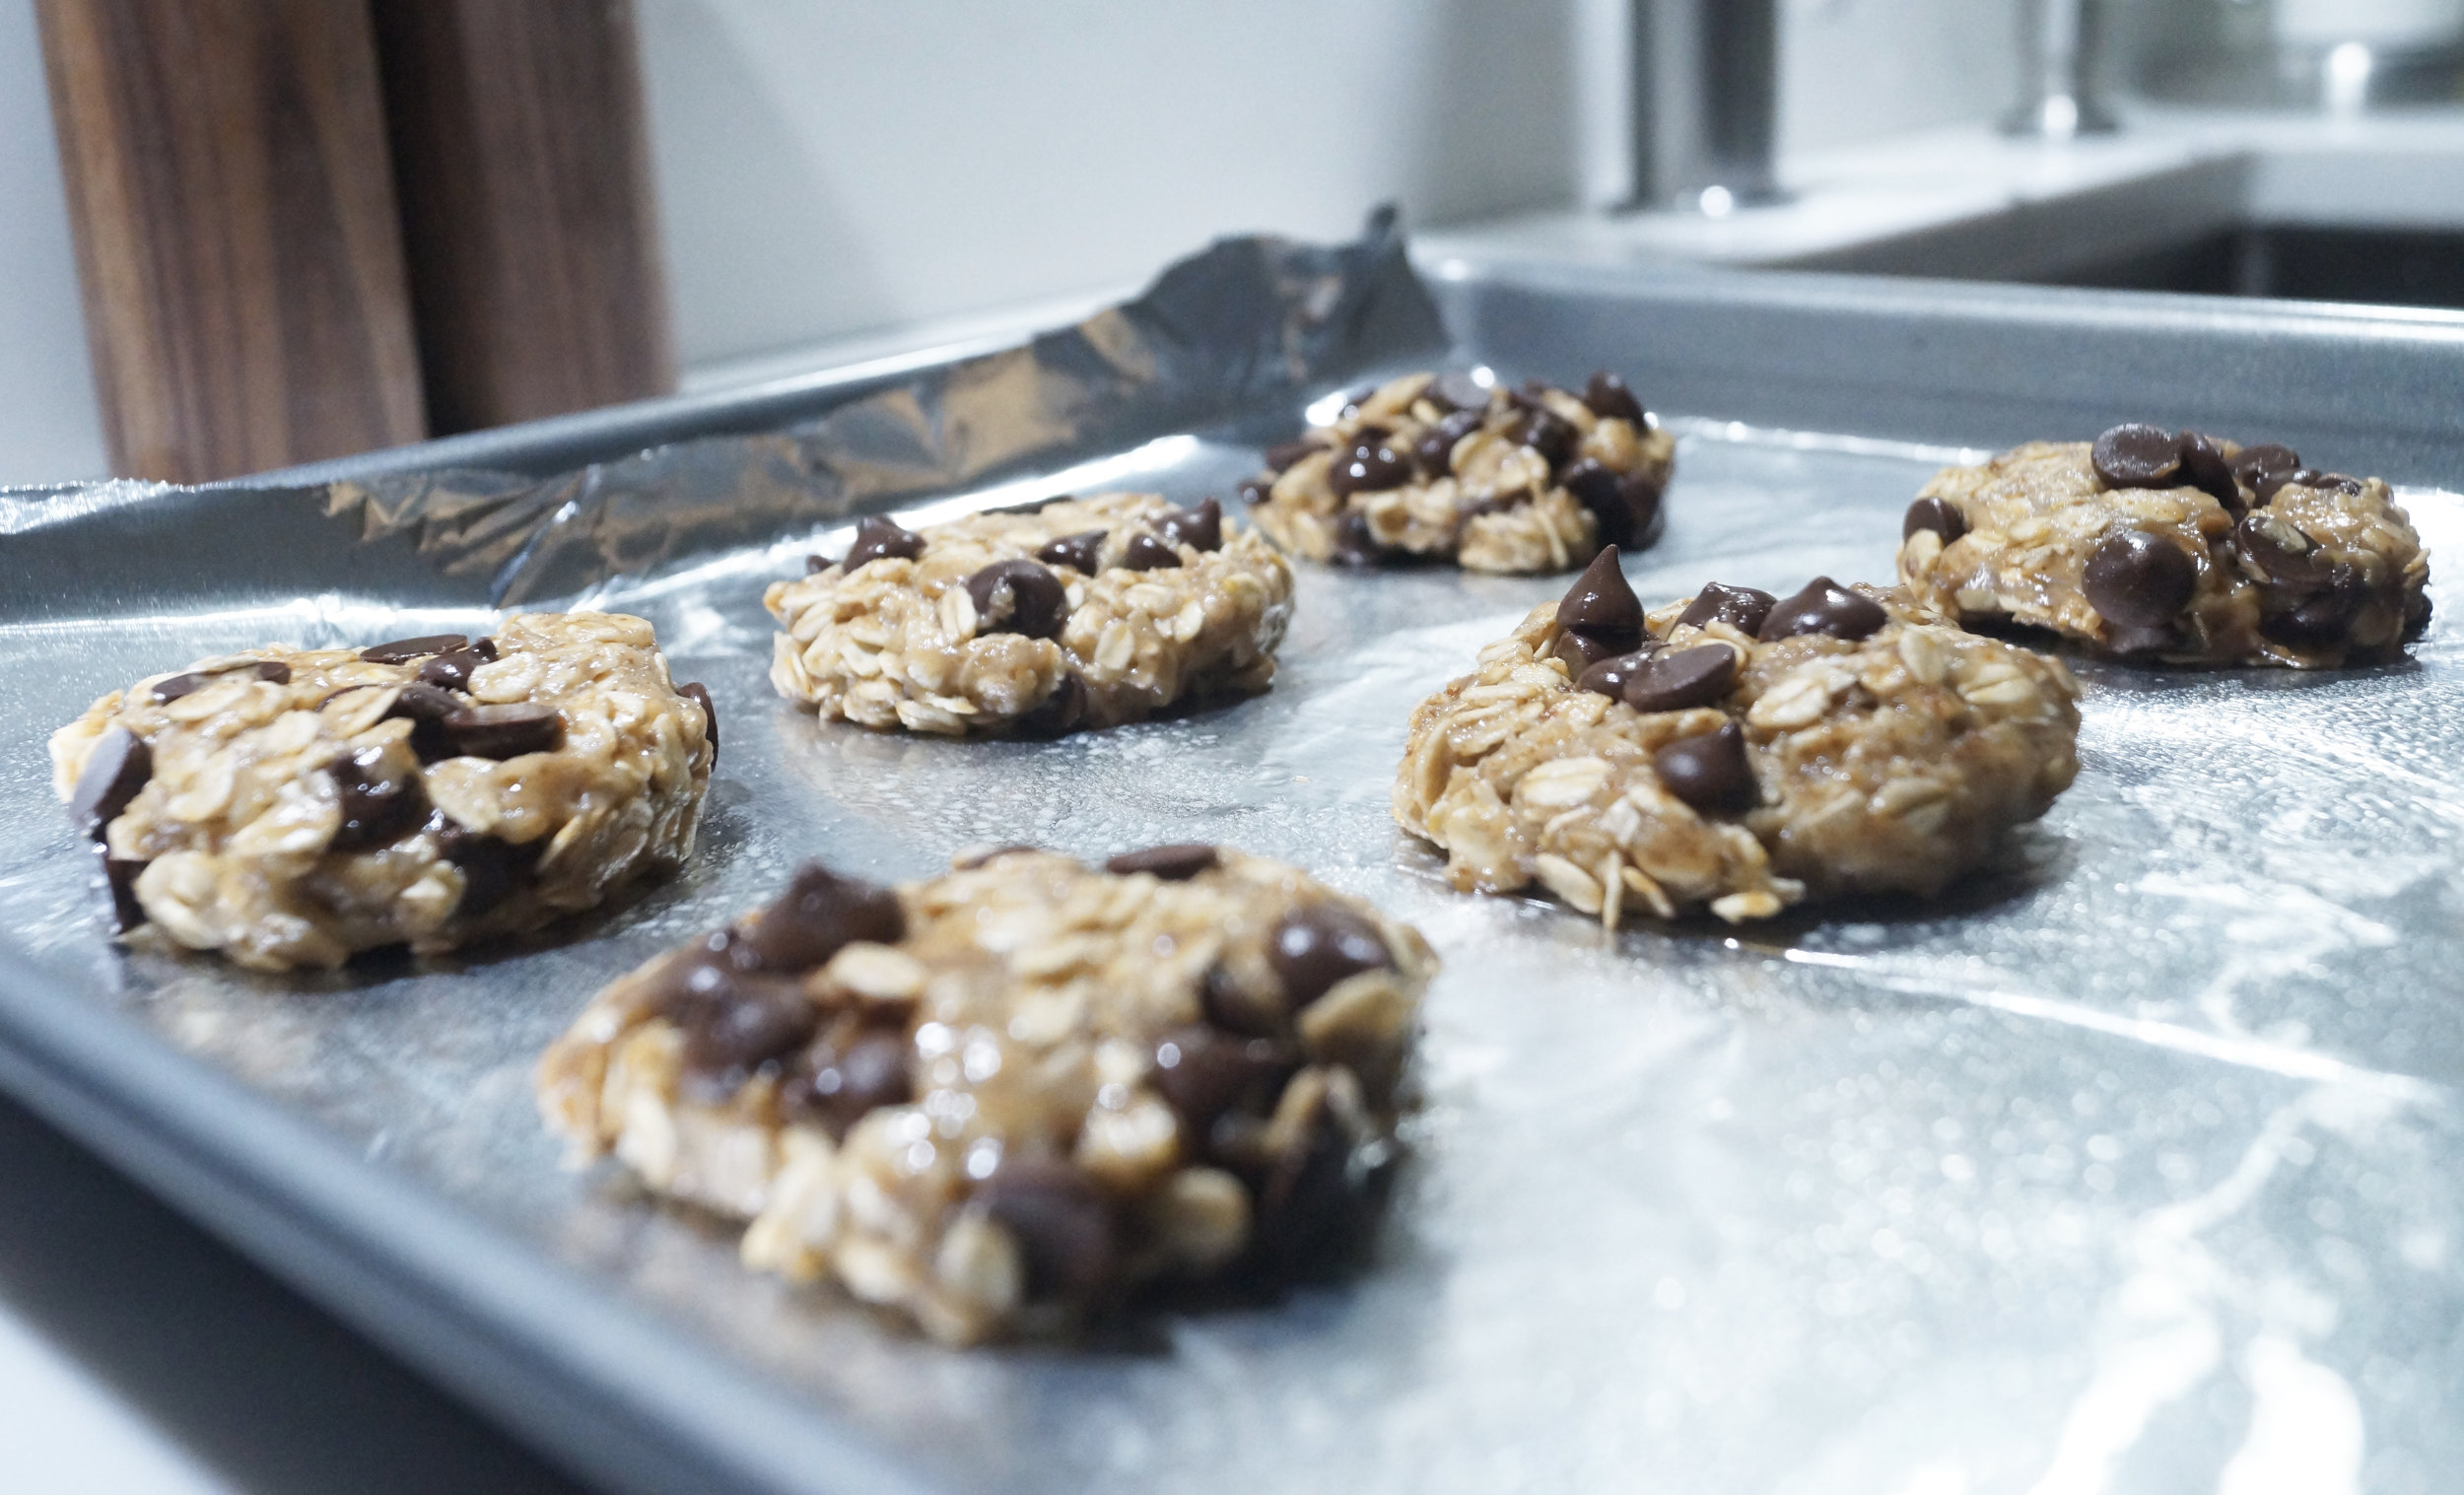 Flatten out your cookies to the extent as seen above. You can also leave them a little rounder on top.